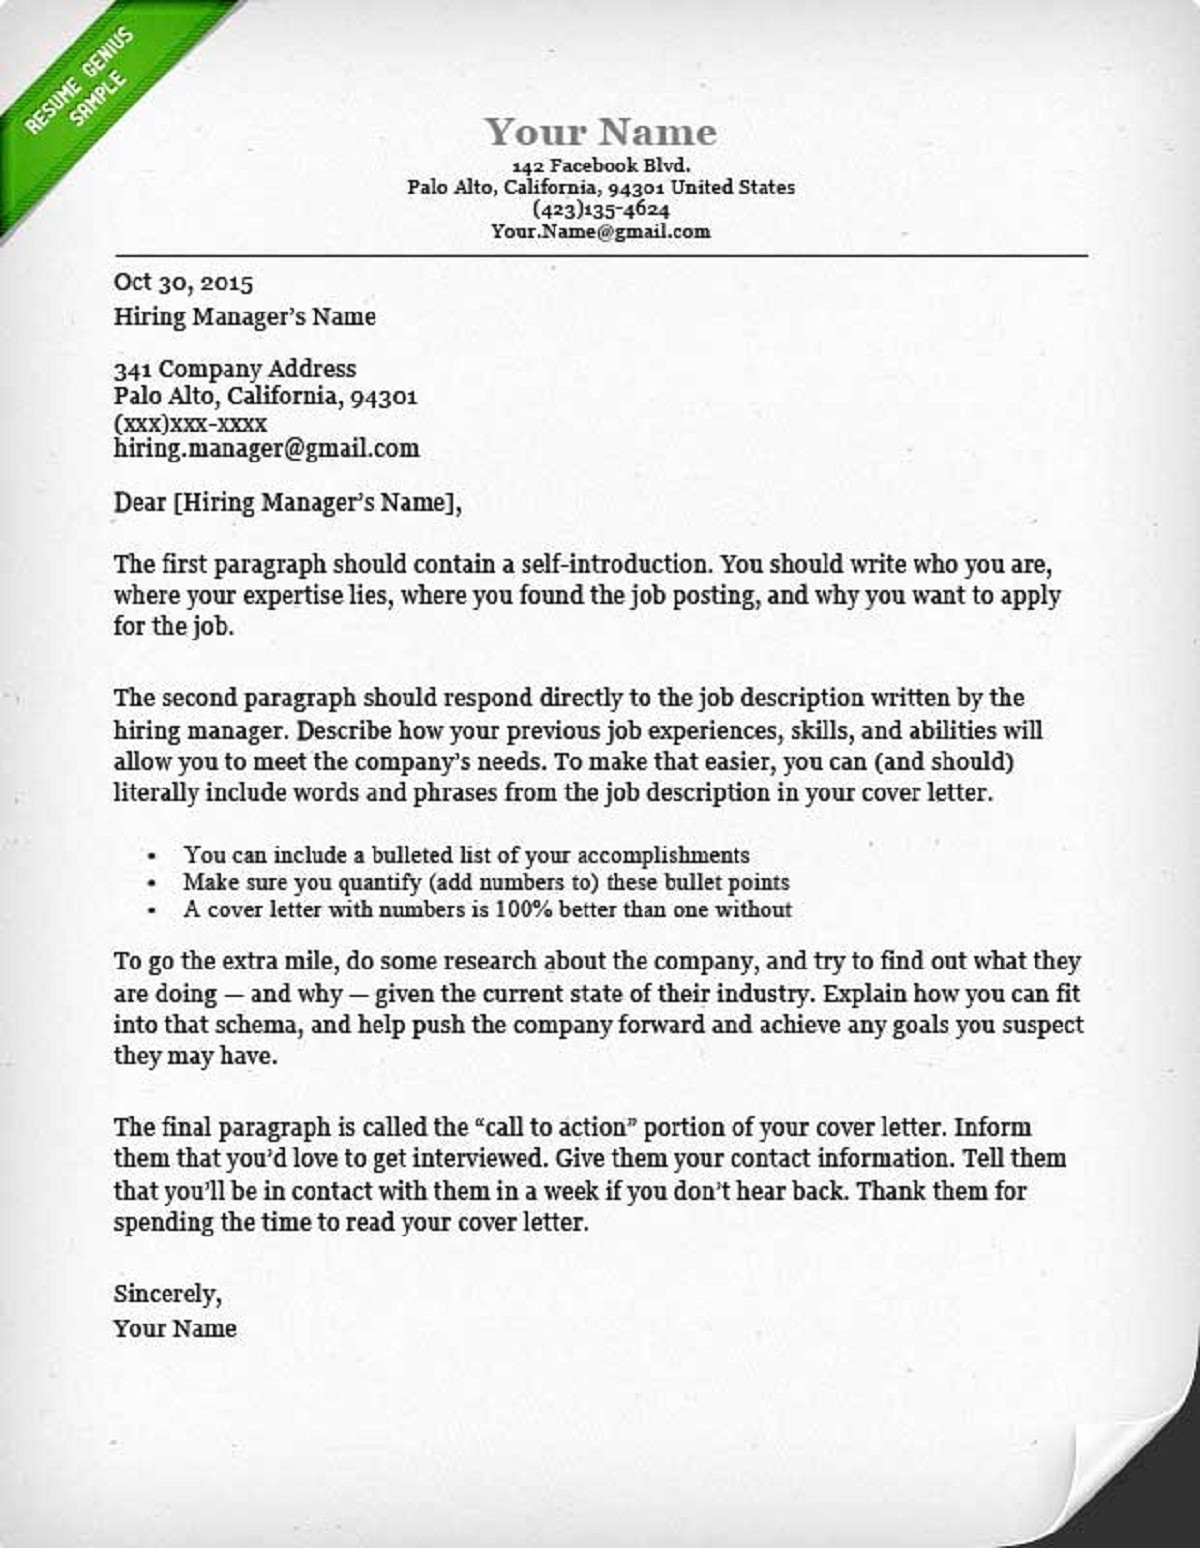 Sample Resume and Cover Letter Inspirational How to Write A Cover Letter Guide with Sample